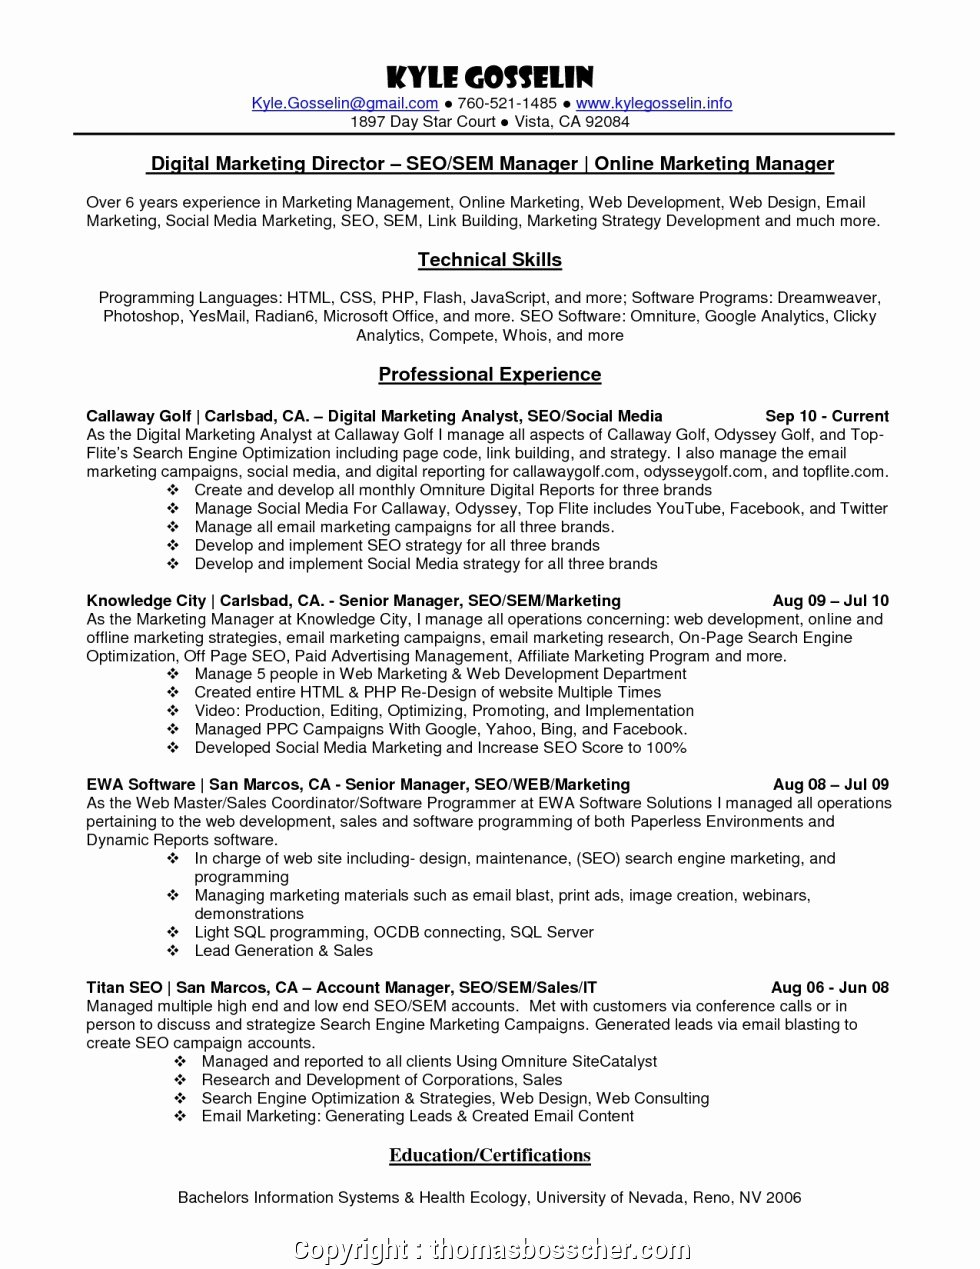 Social Media Manager Resumes Unique Simple social Media Manager Resume Example socialdia